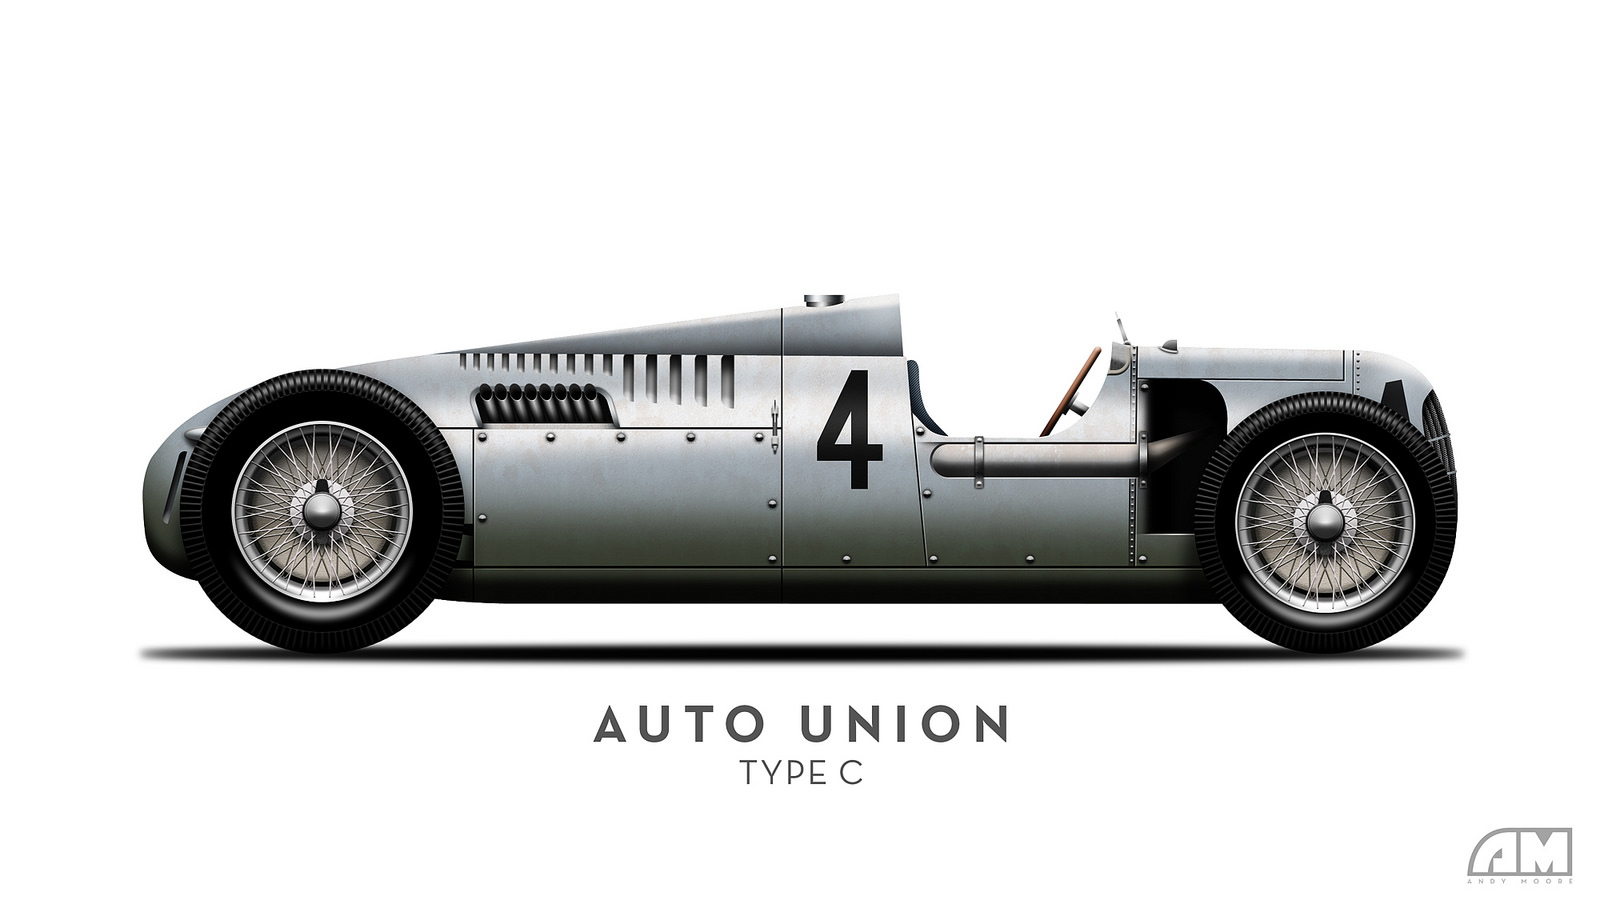 Auto union type photo - 4